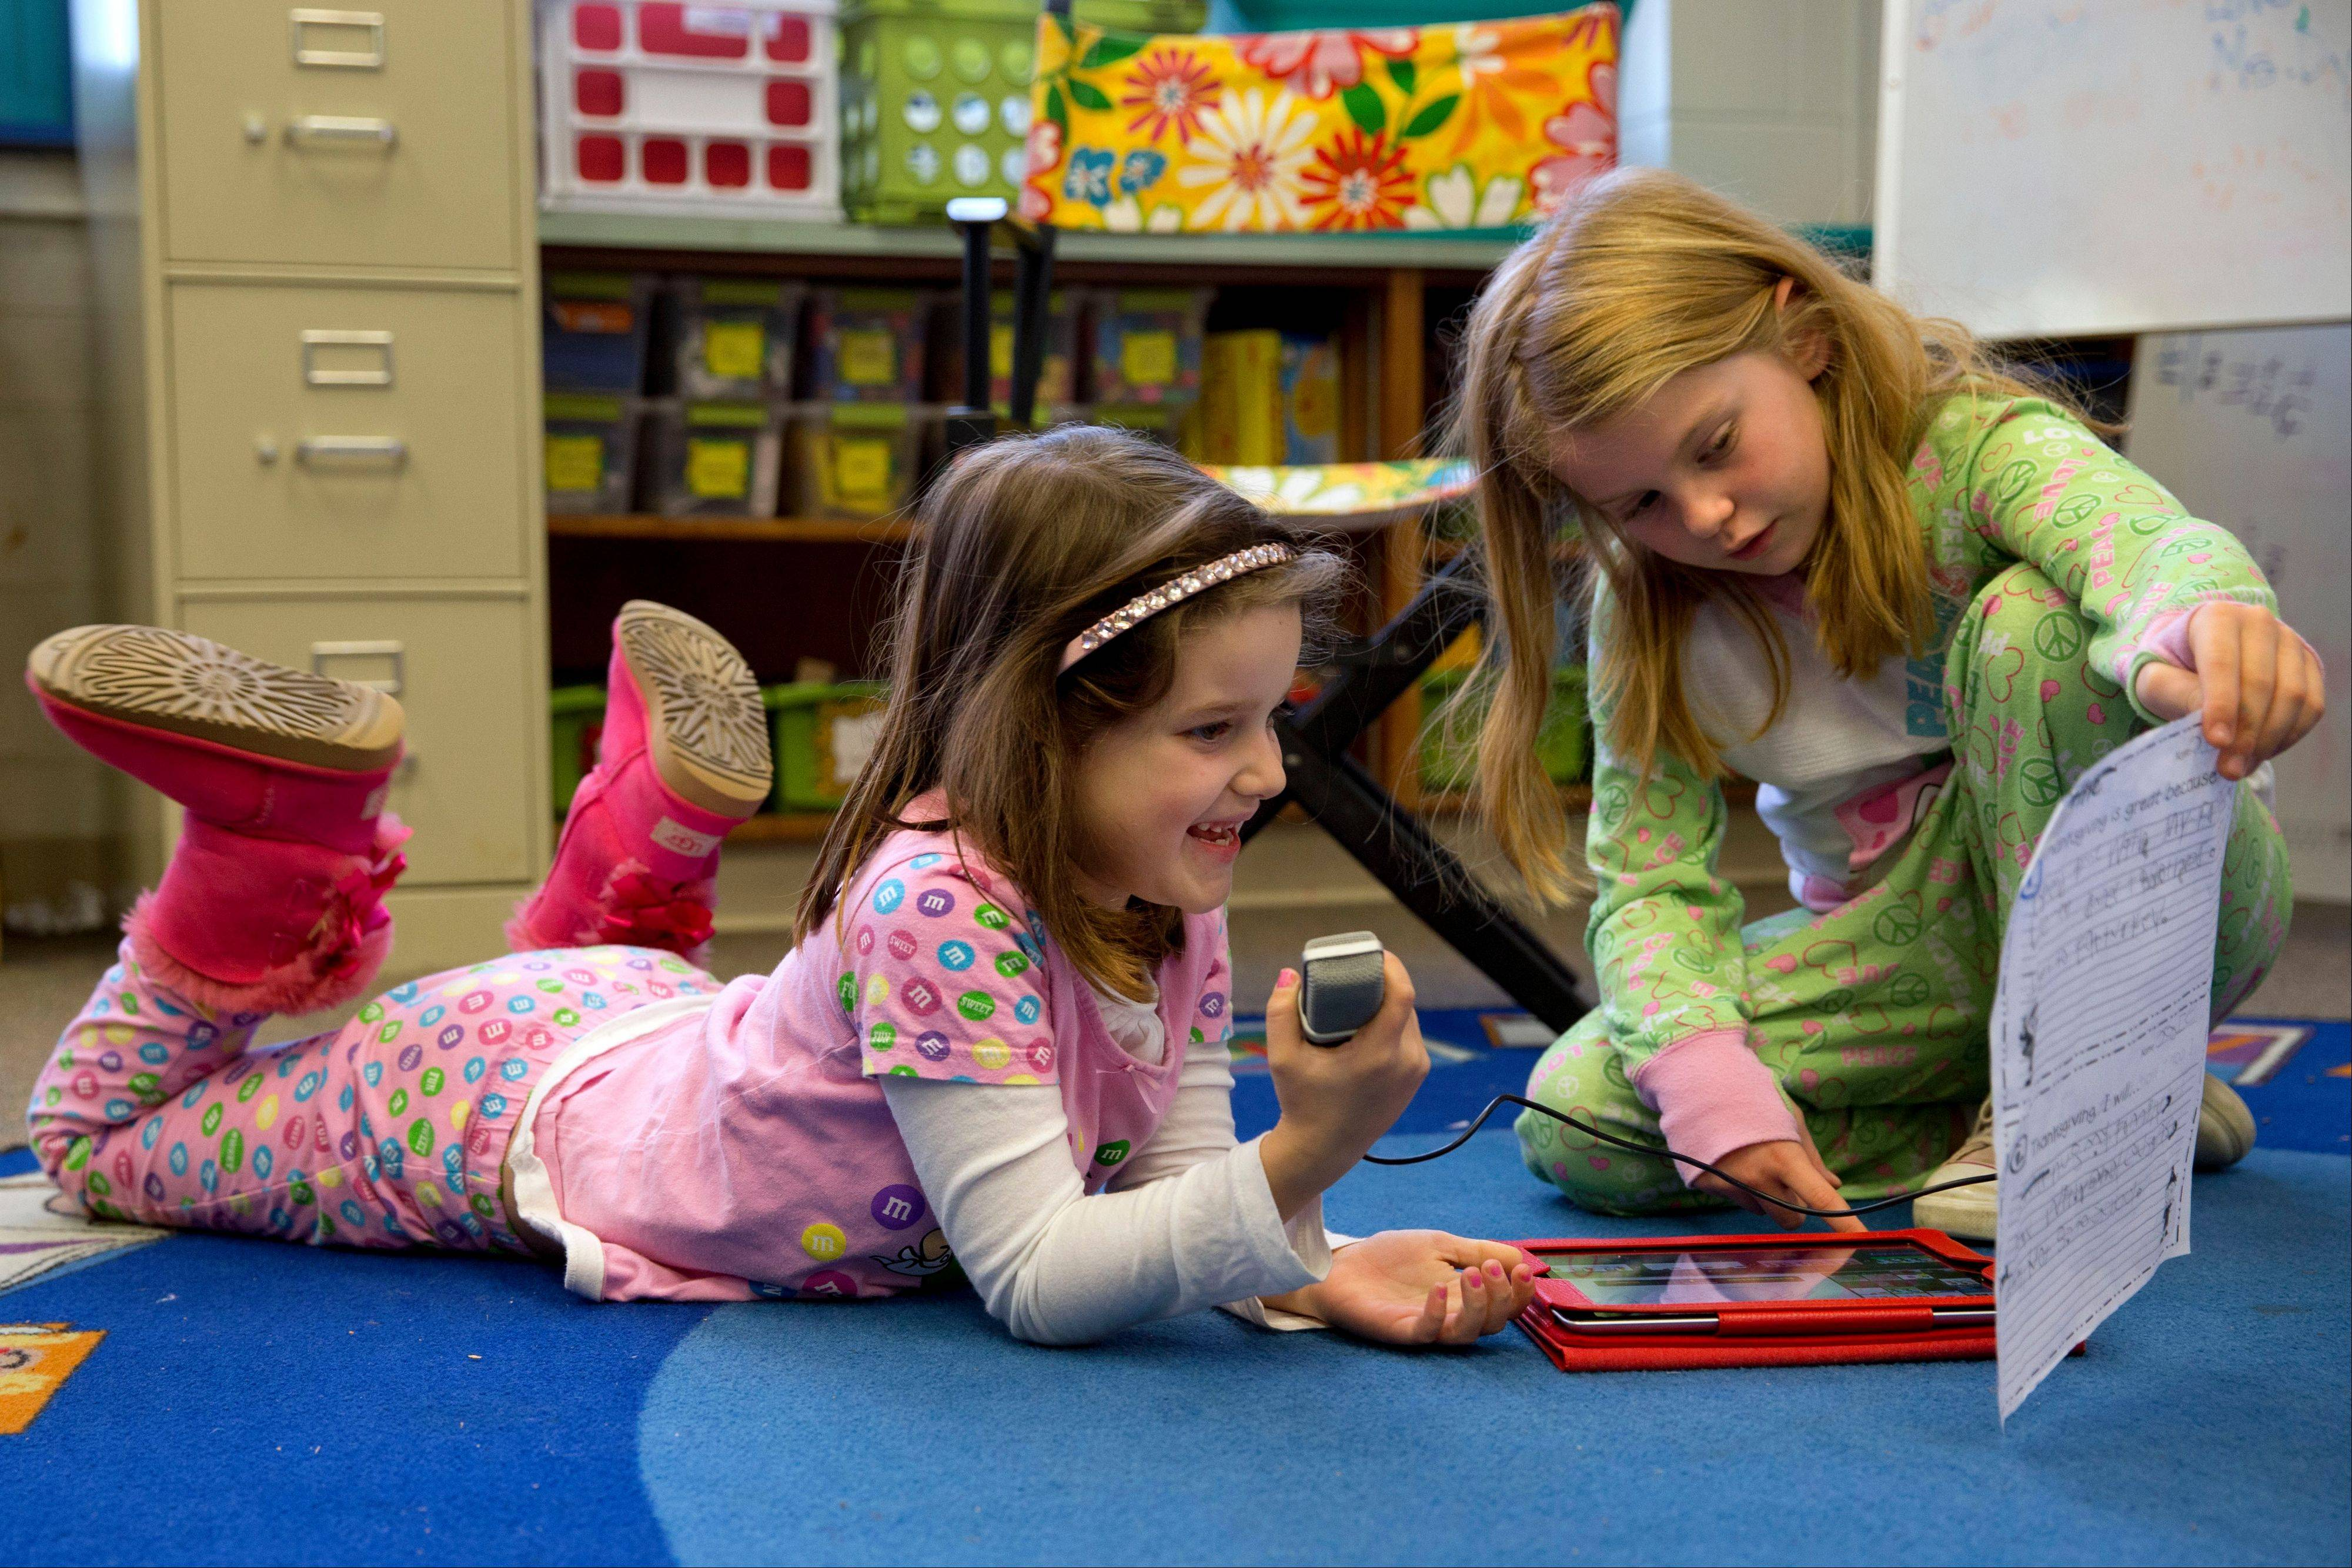 In ths photo from November 2013, Josie Barton, 7, left, records audio into an iPad for an iMovie project with classmate Marin Peale, 7, in their multi-grade first and second grade class at Jamestown Elementary School in Arlington, Va. Needed to keep a school building running these days: Water, electricity � and broadband.